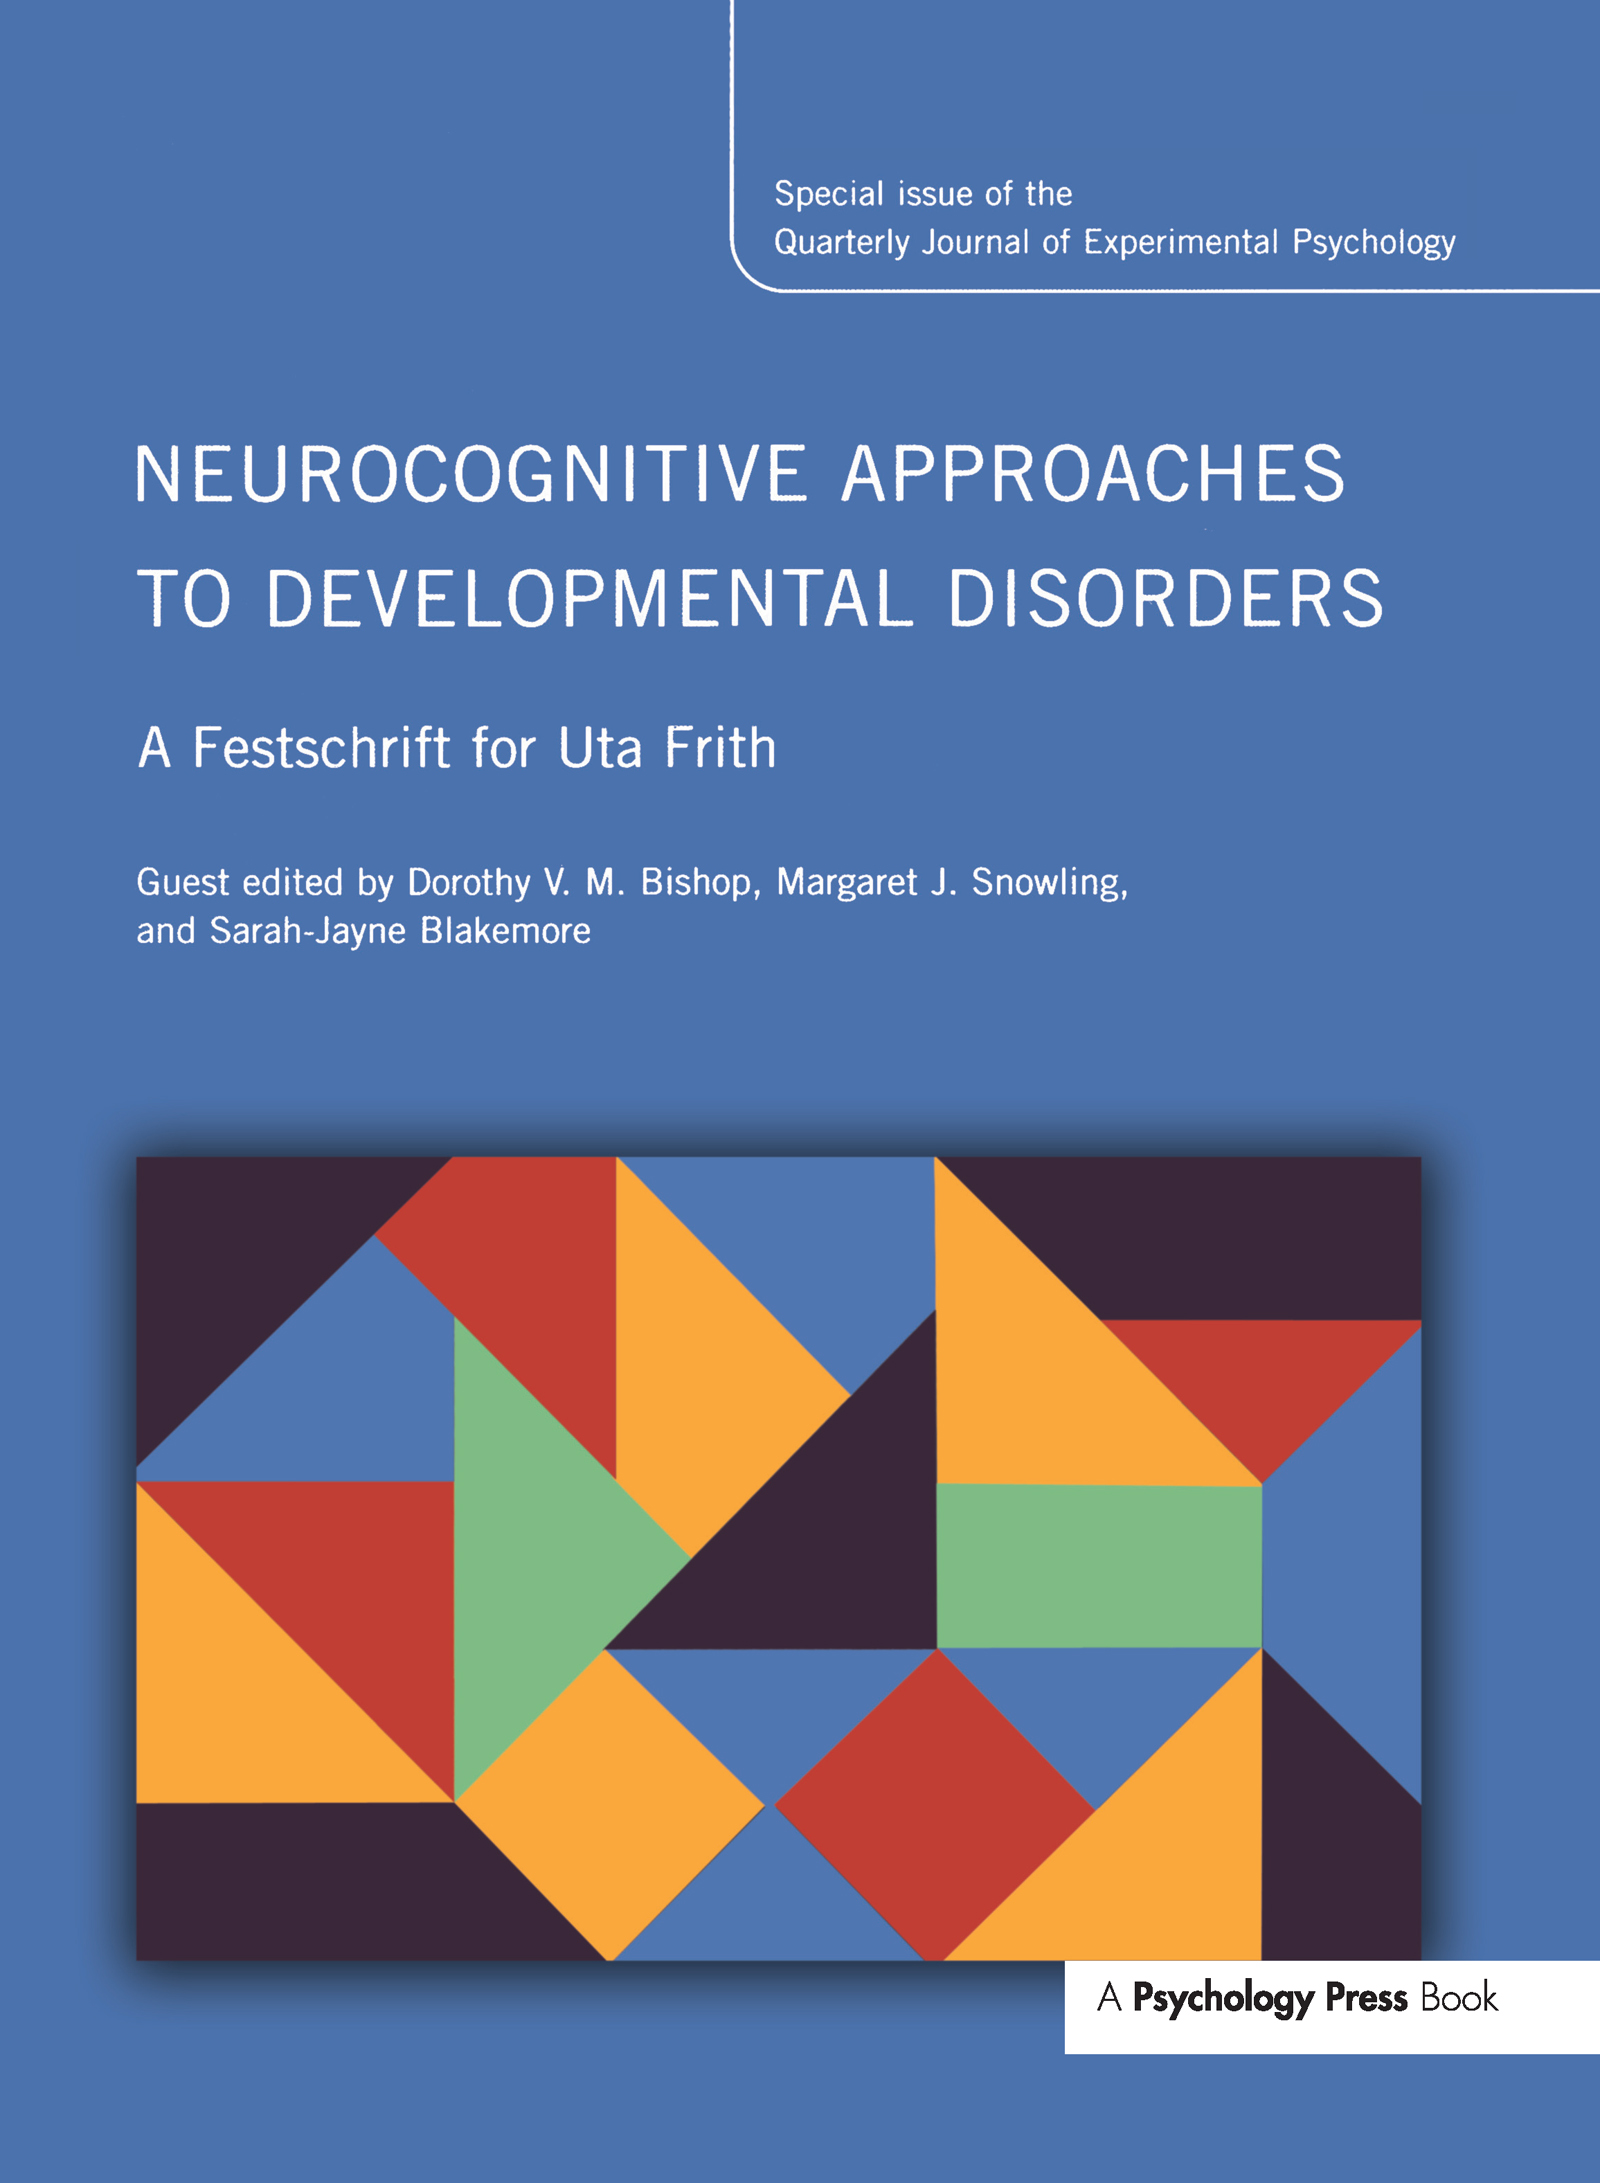 Neurocognitive Approaches to Developmental Disorders: A Festschrift for Uta Frith: A Special Issue of the Quarterly Journal of Experimental Psychology (Hardback) book cover